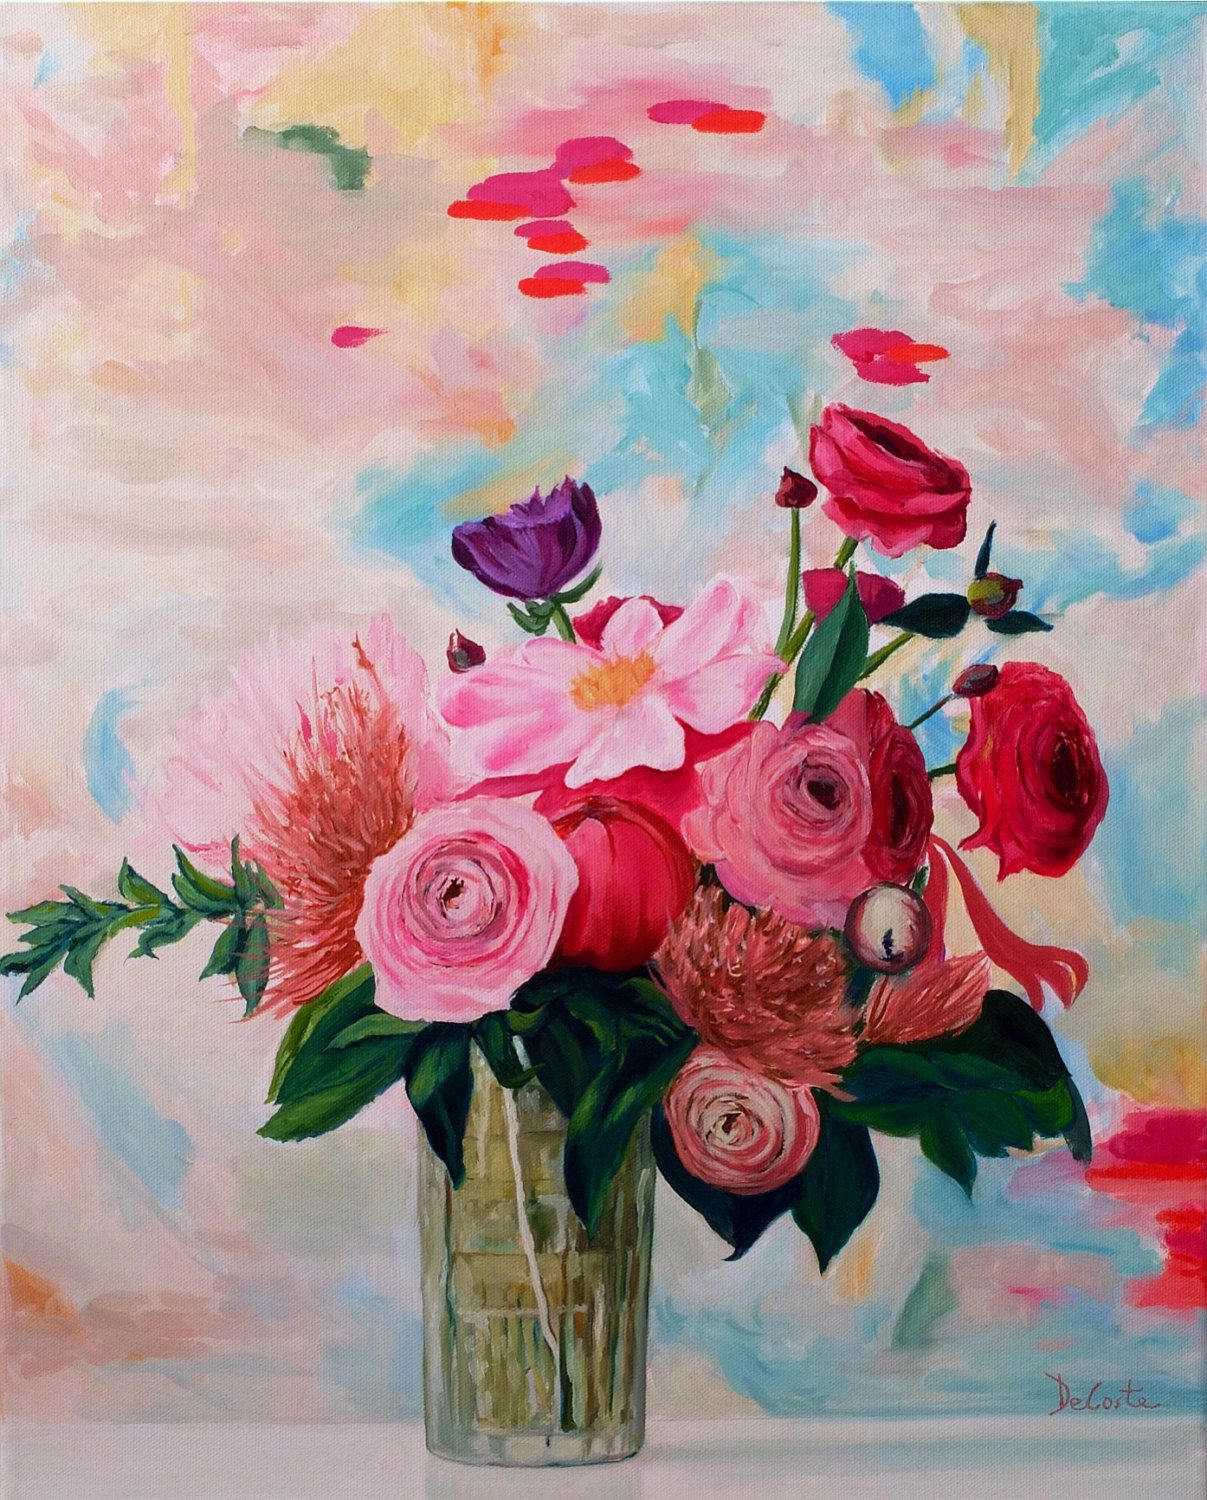 Print of colorful flowers from an oil painting by JeanneDeCosteart ...